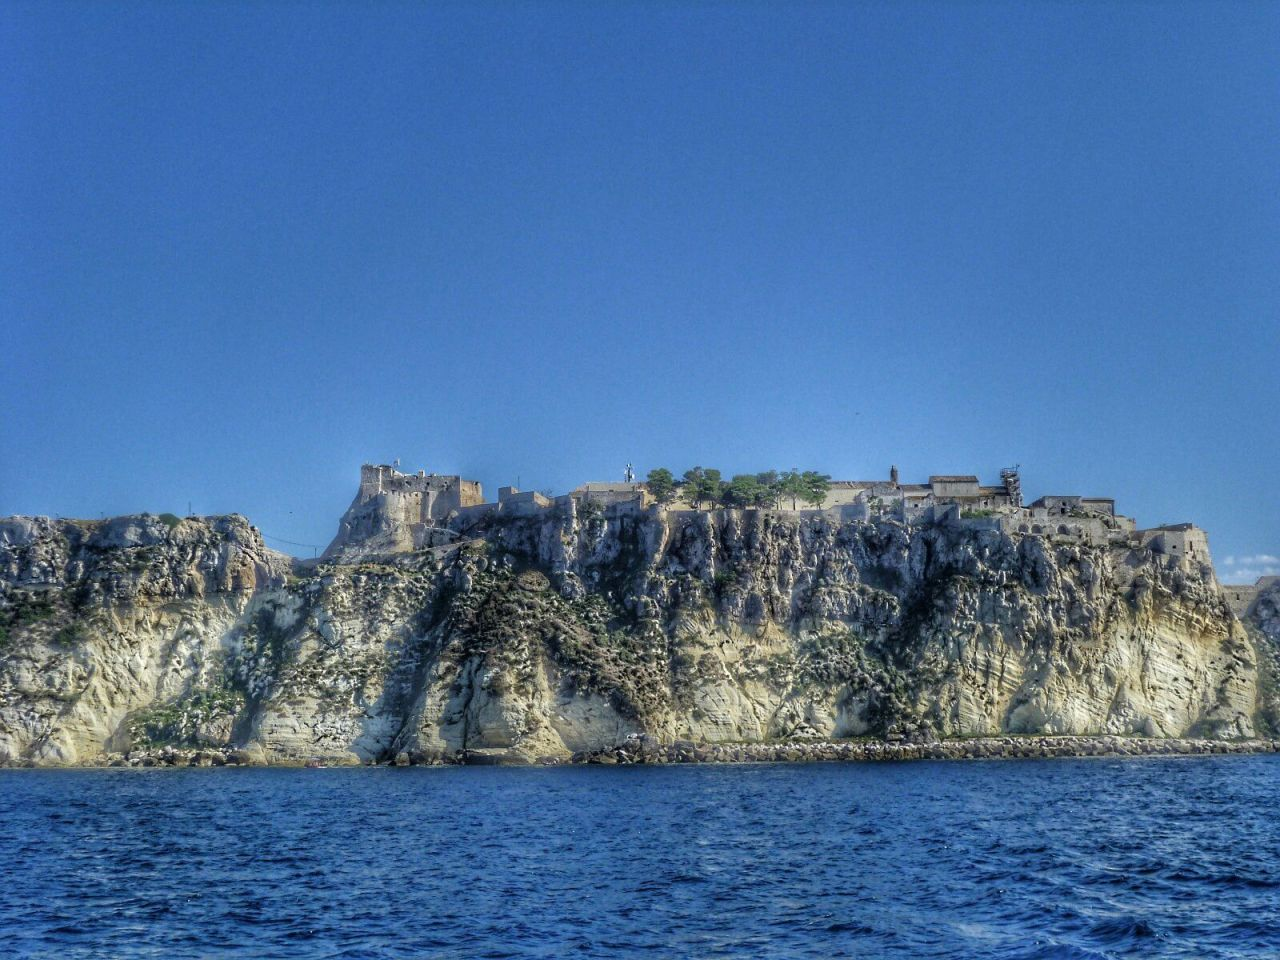 Italian coast: Tremitti islands